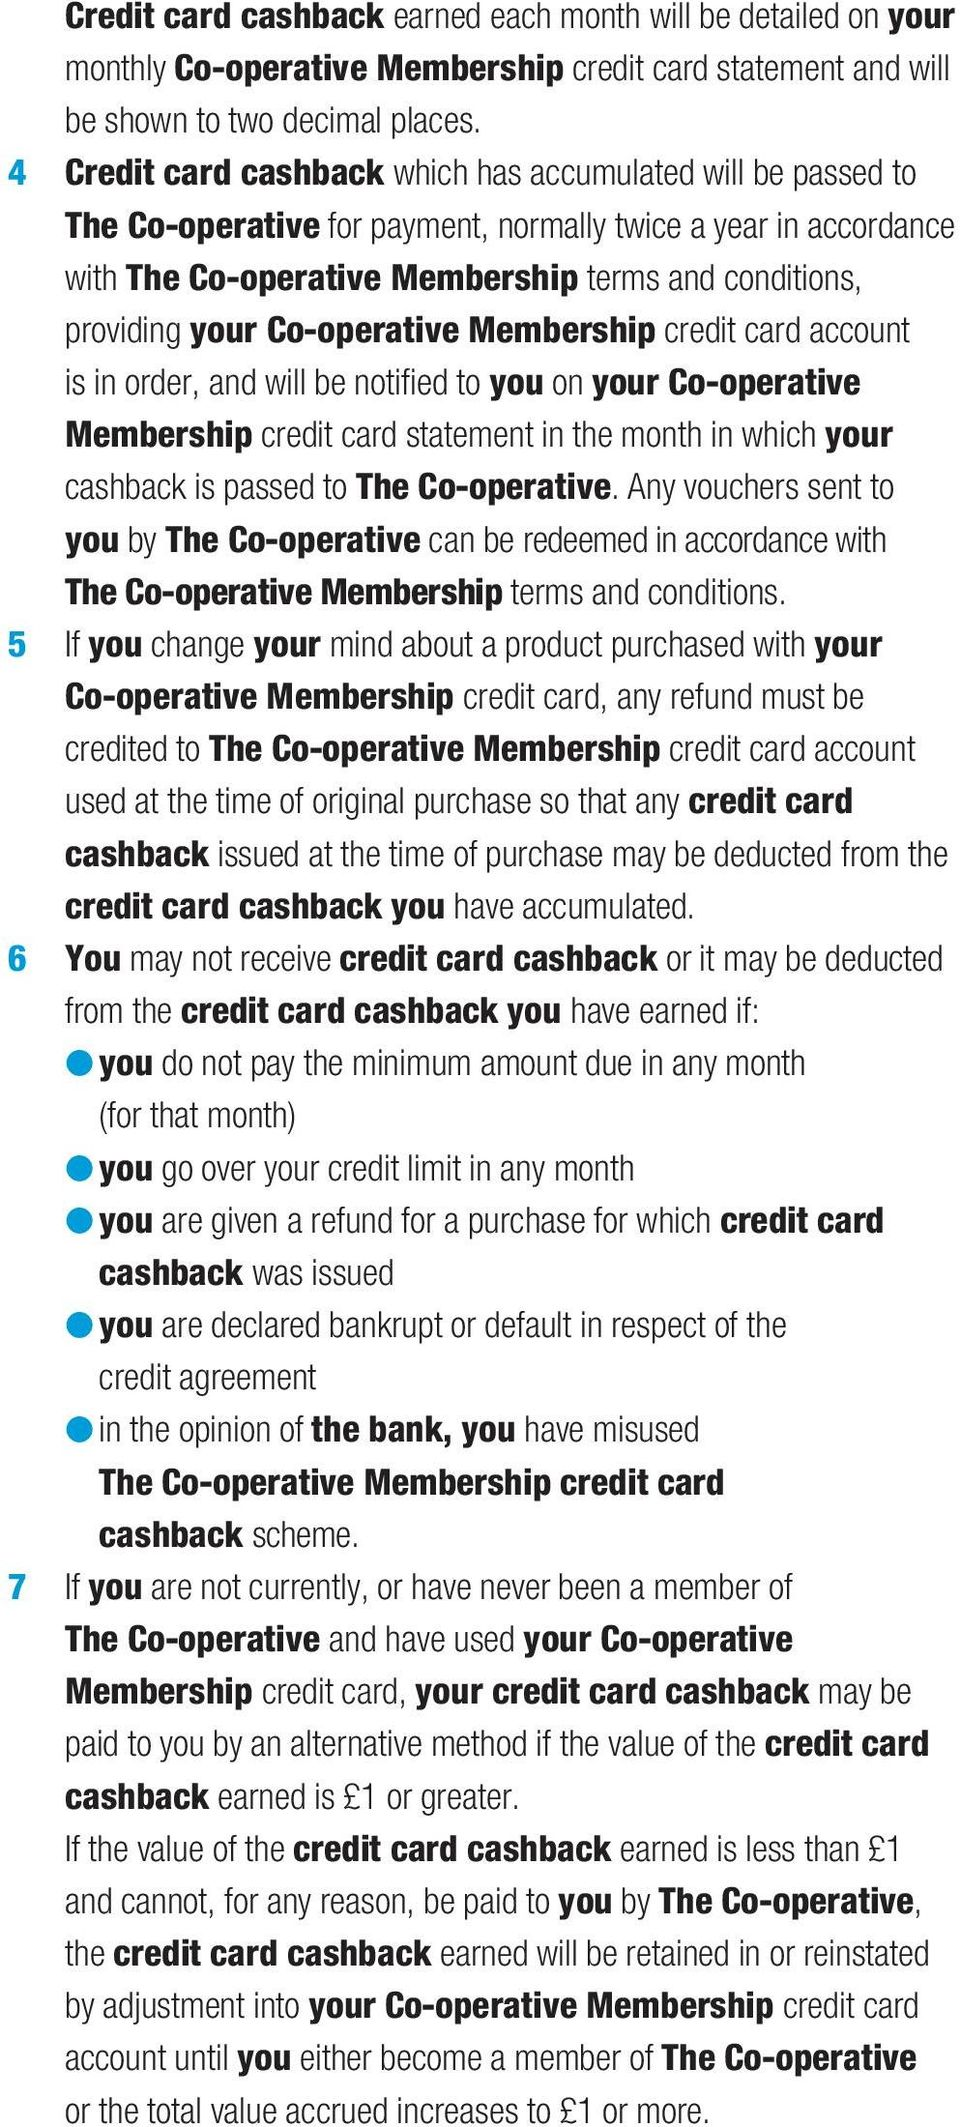 Co-operative Membership credit card account is in order, and will be notified to you on your Co-operative Membership credit card statement in the month in which your cashback is passed to The